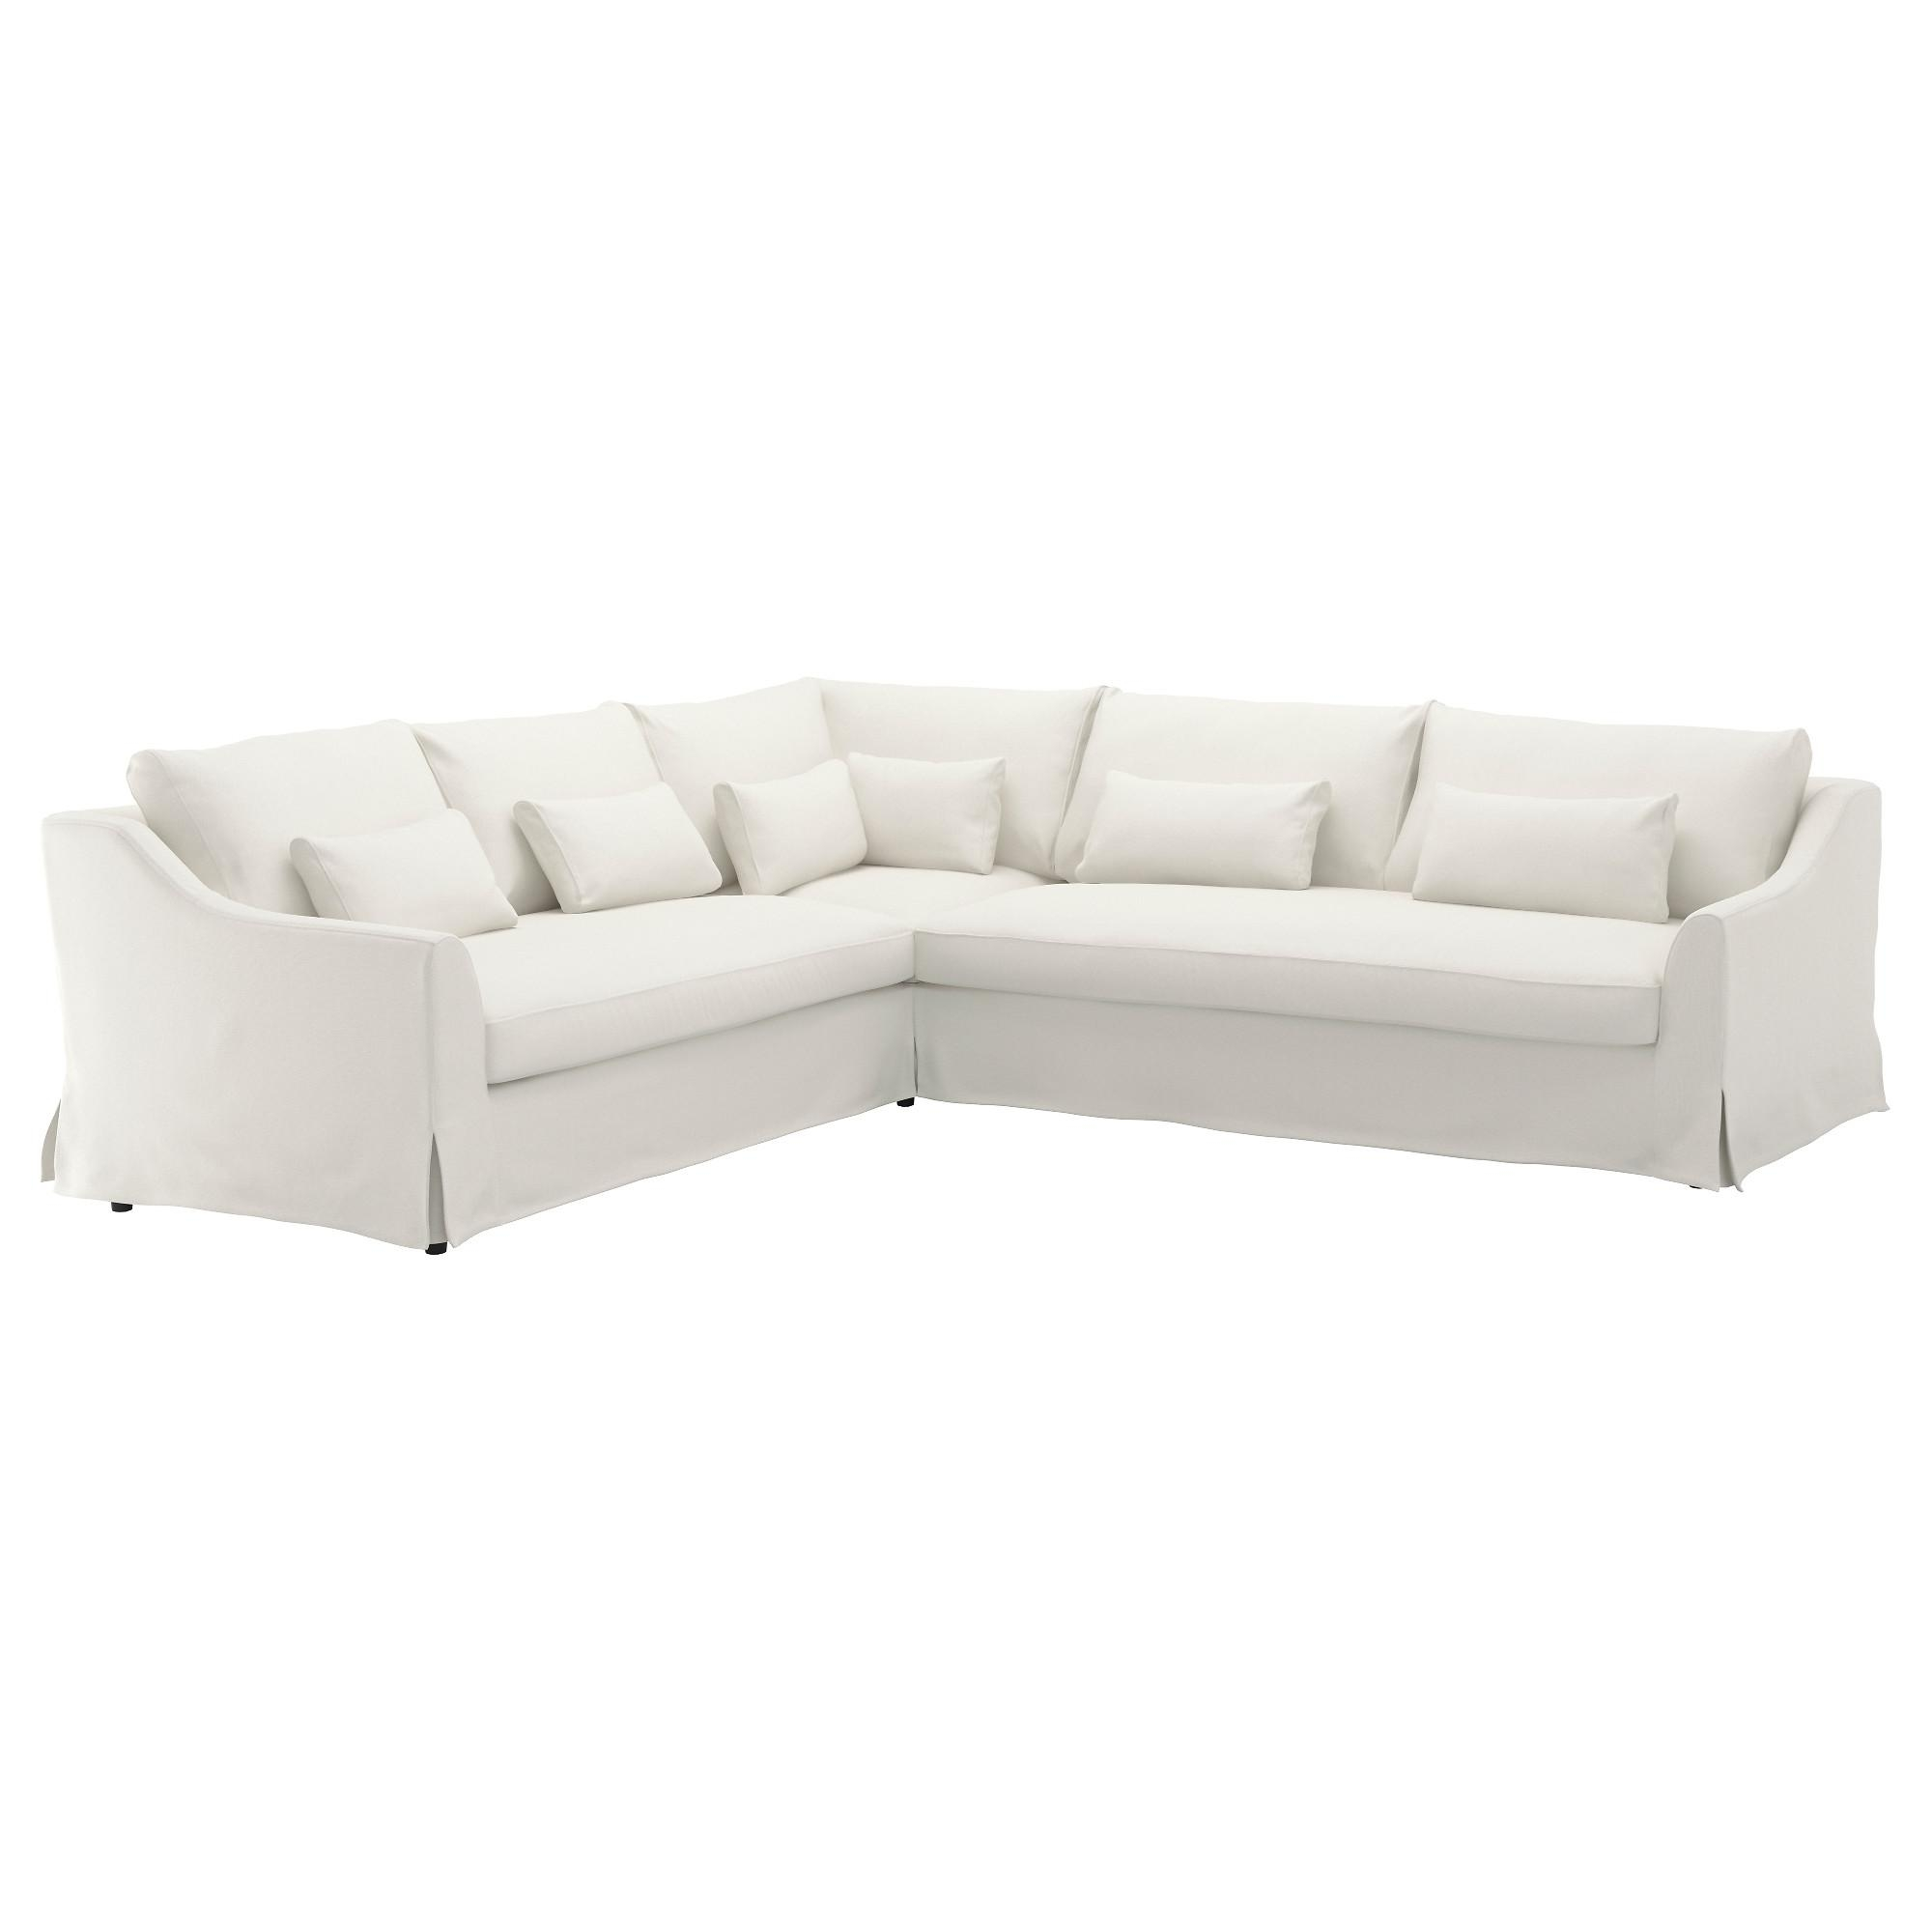 Fabric Sofas – Modern & Contemporary – Ikea In White Sofa Chairs (Image 3 of 20)